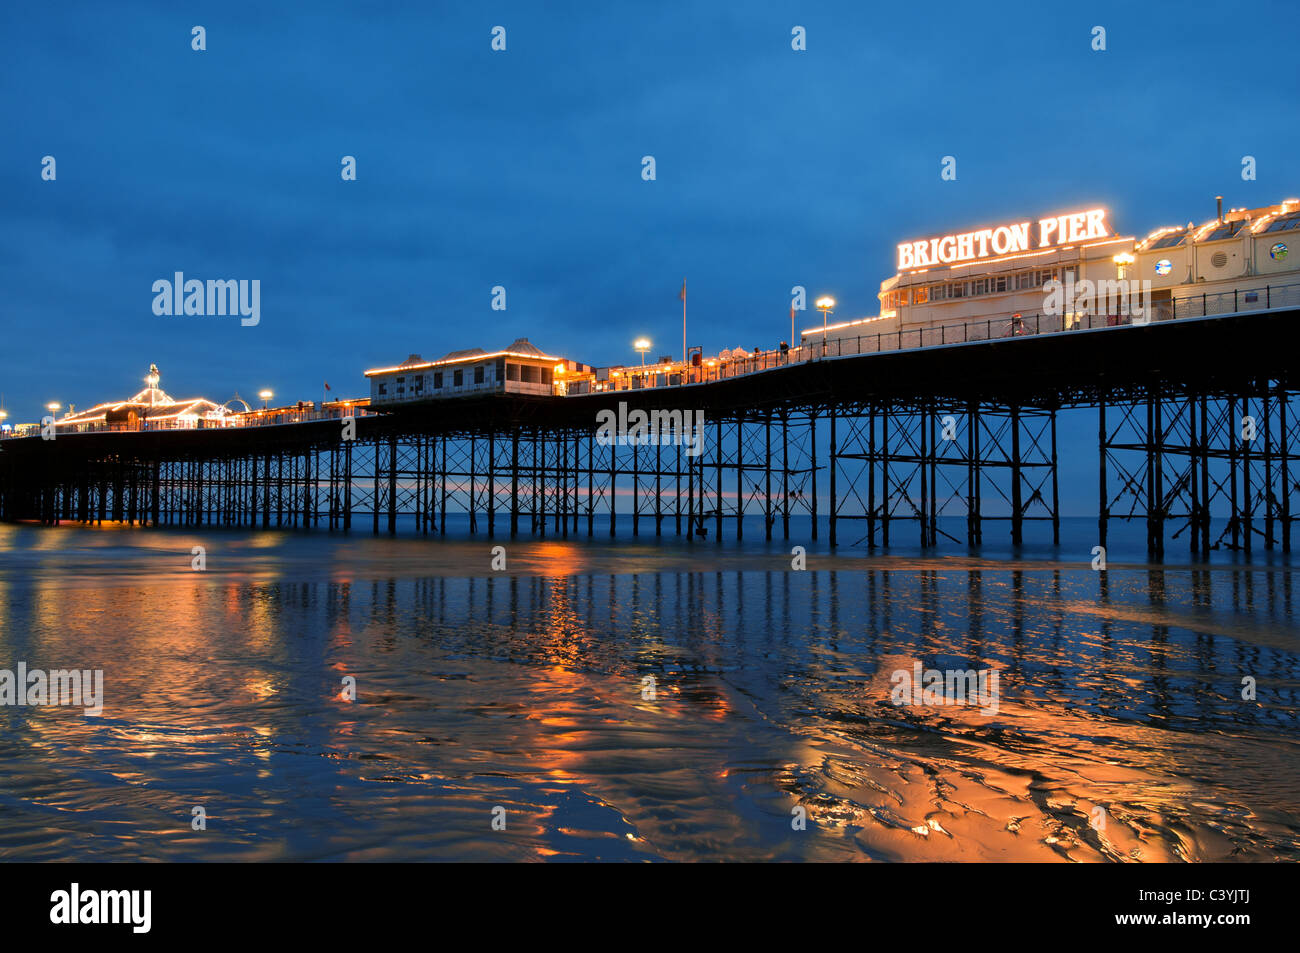 brighton pier,sussex,england,uk,travel,europe,space,coast,beach,pier,victorian,night,dusk, - Stock Image